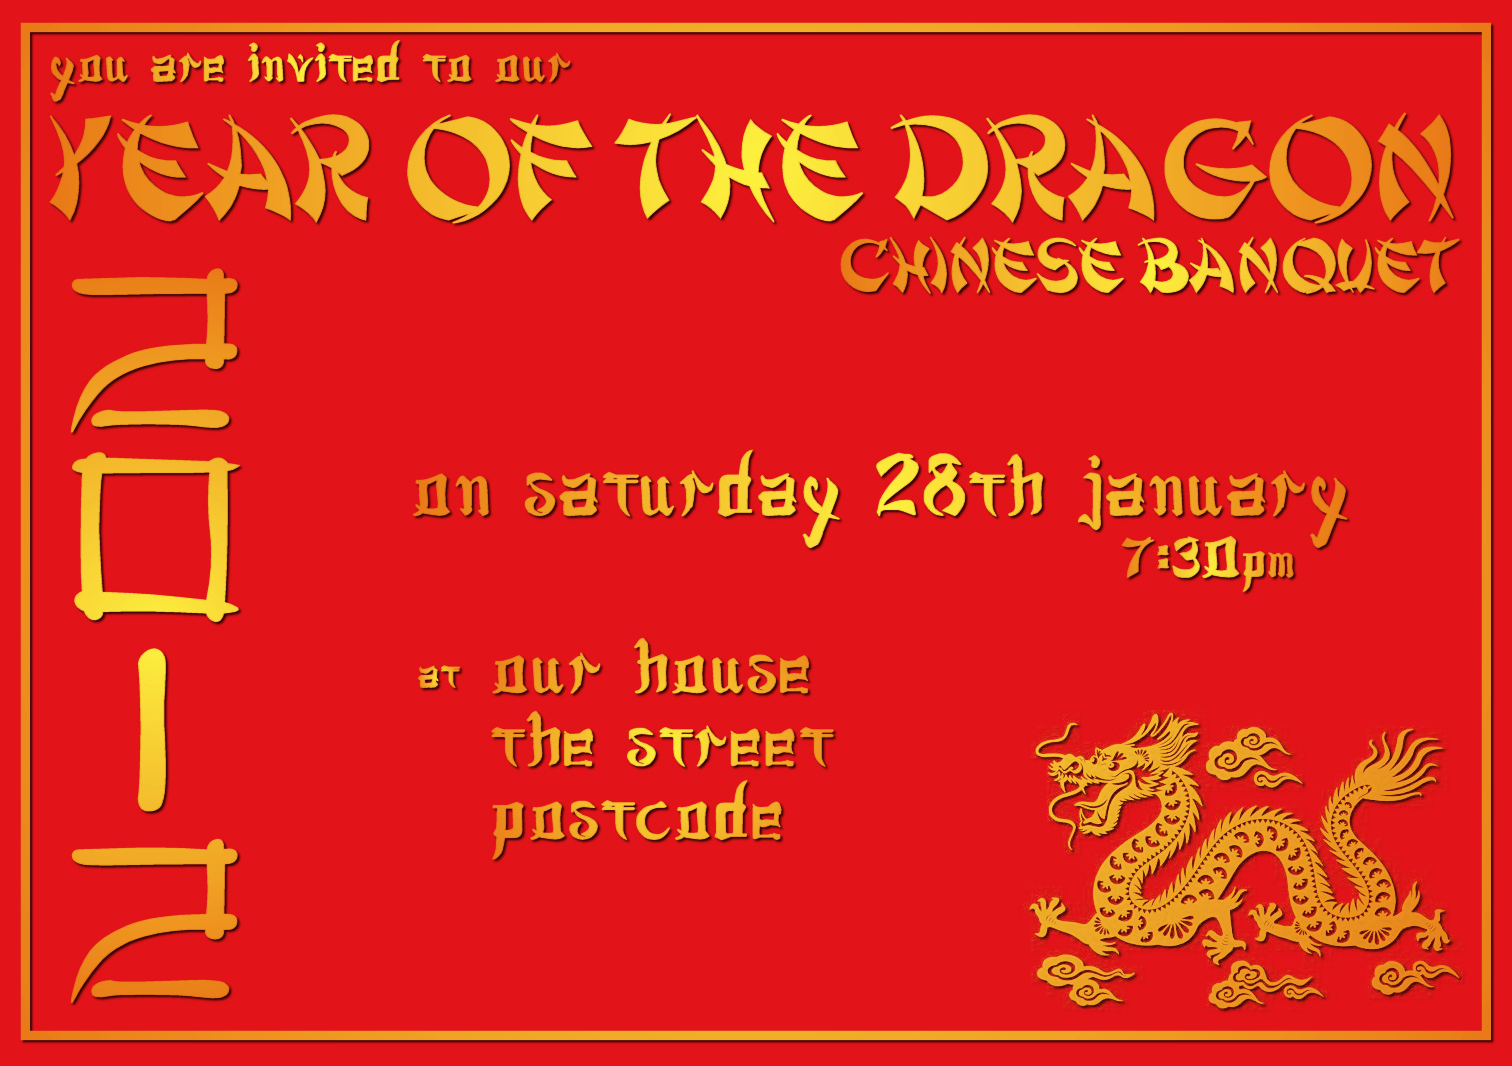 Chinese New Year Invitation Beautiful My Chinese Banquet Bringing It All to Her the